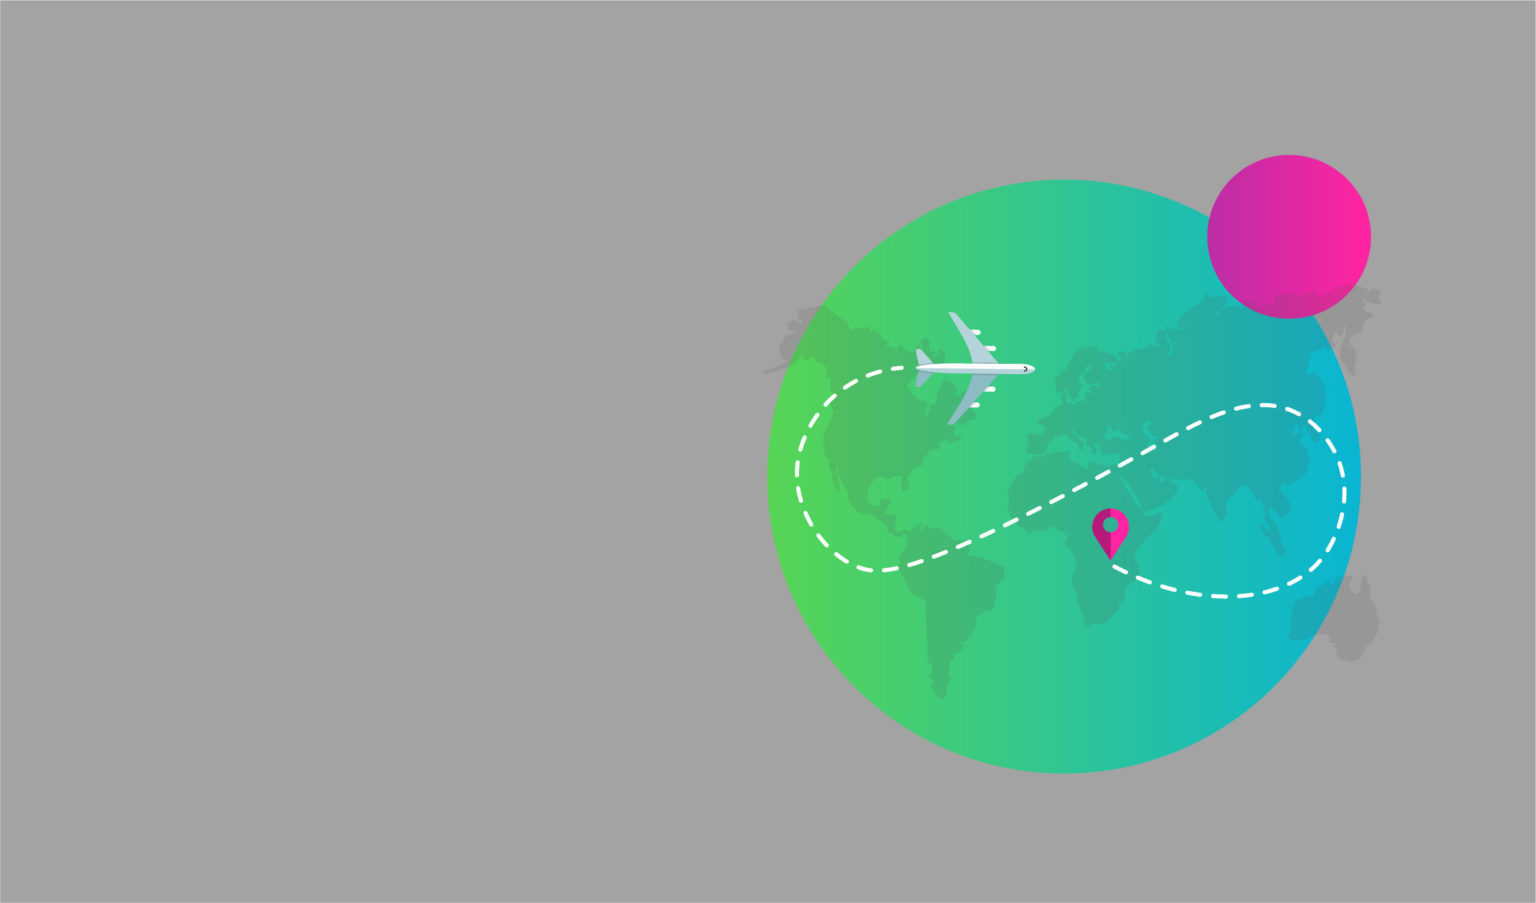 Green globe with airplane illustration